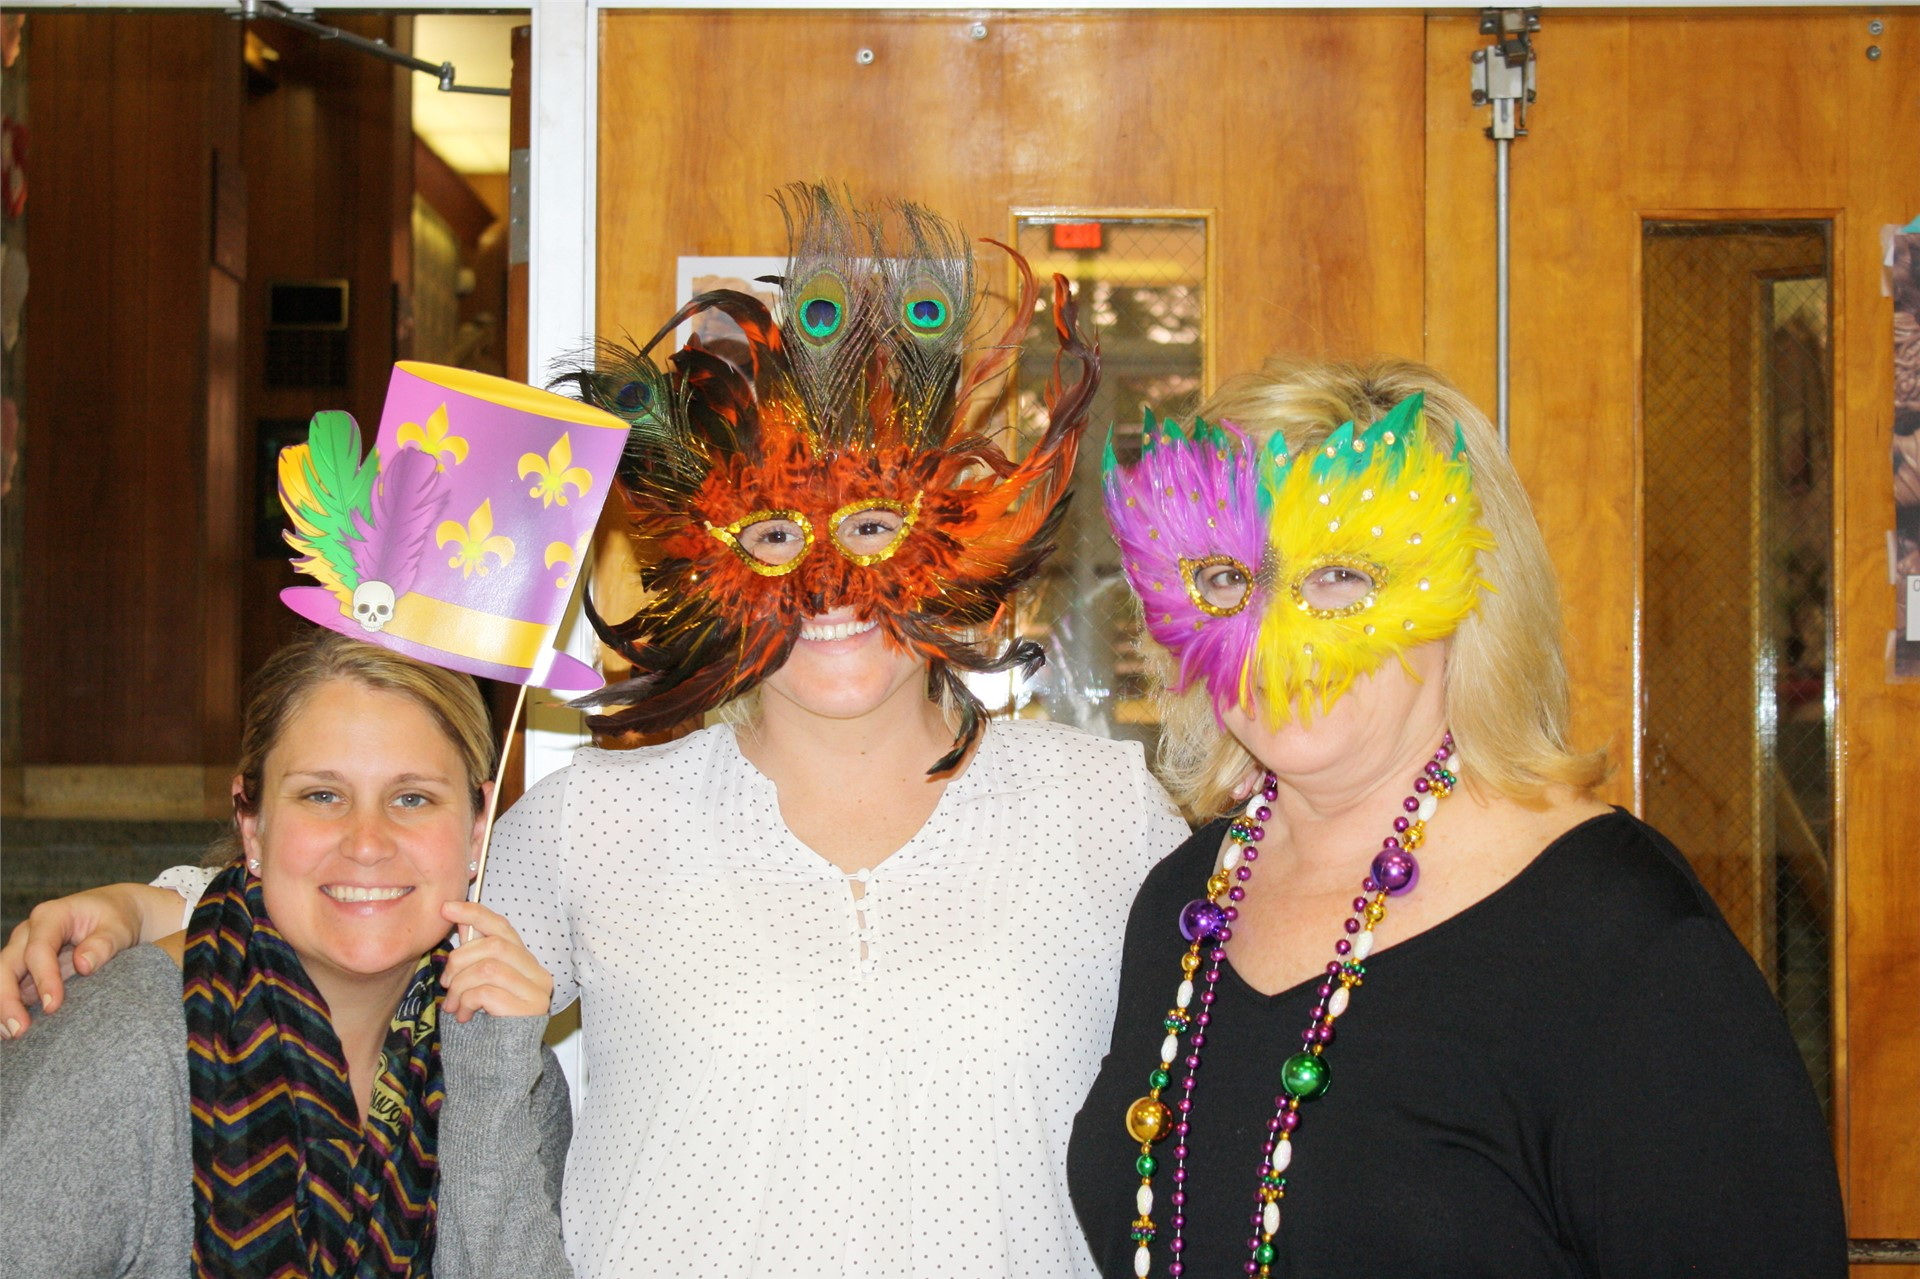 Mardi Gras fun with faculty and staff